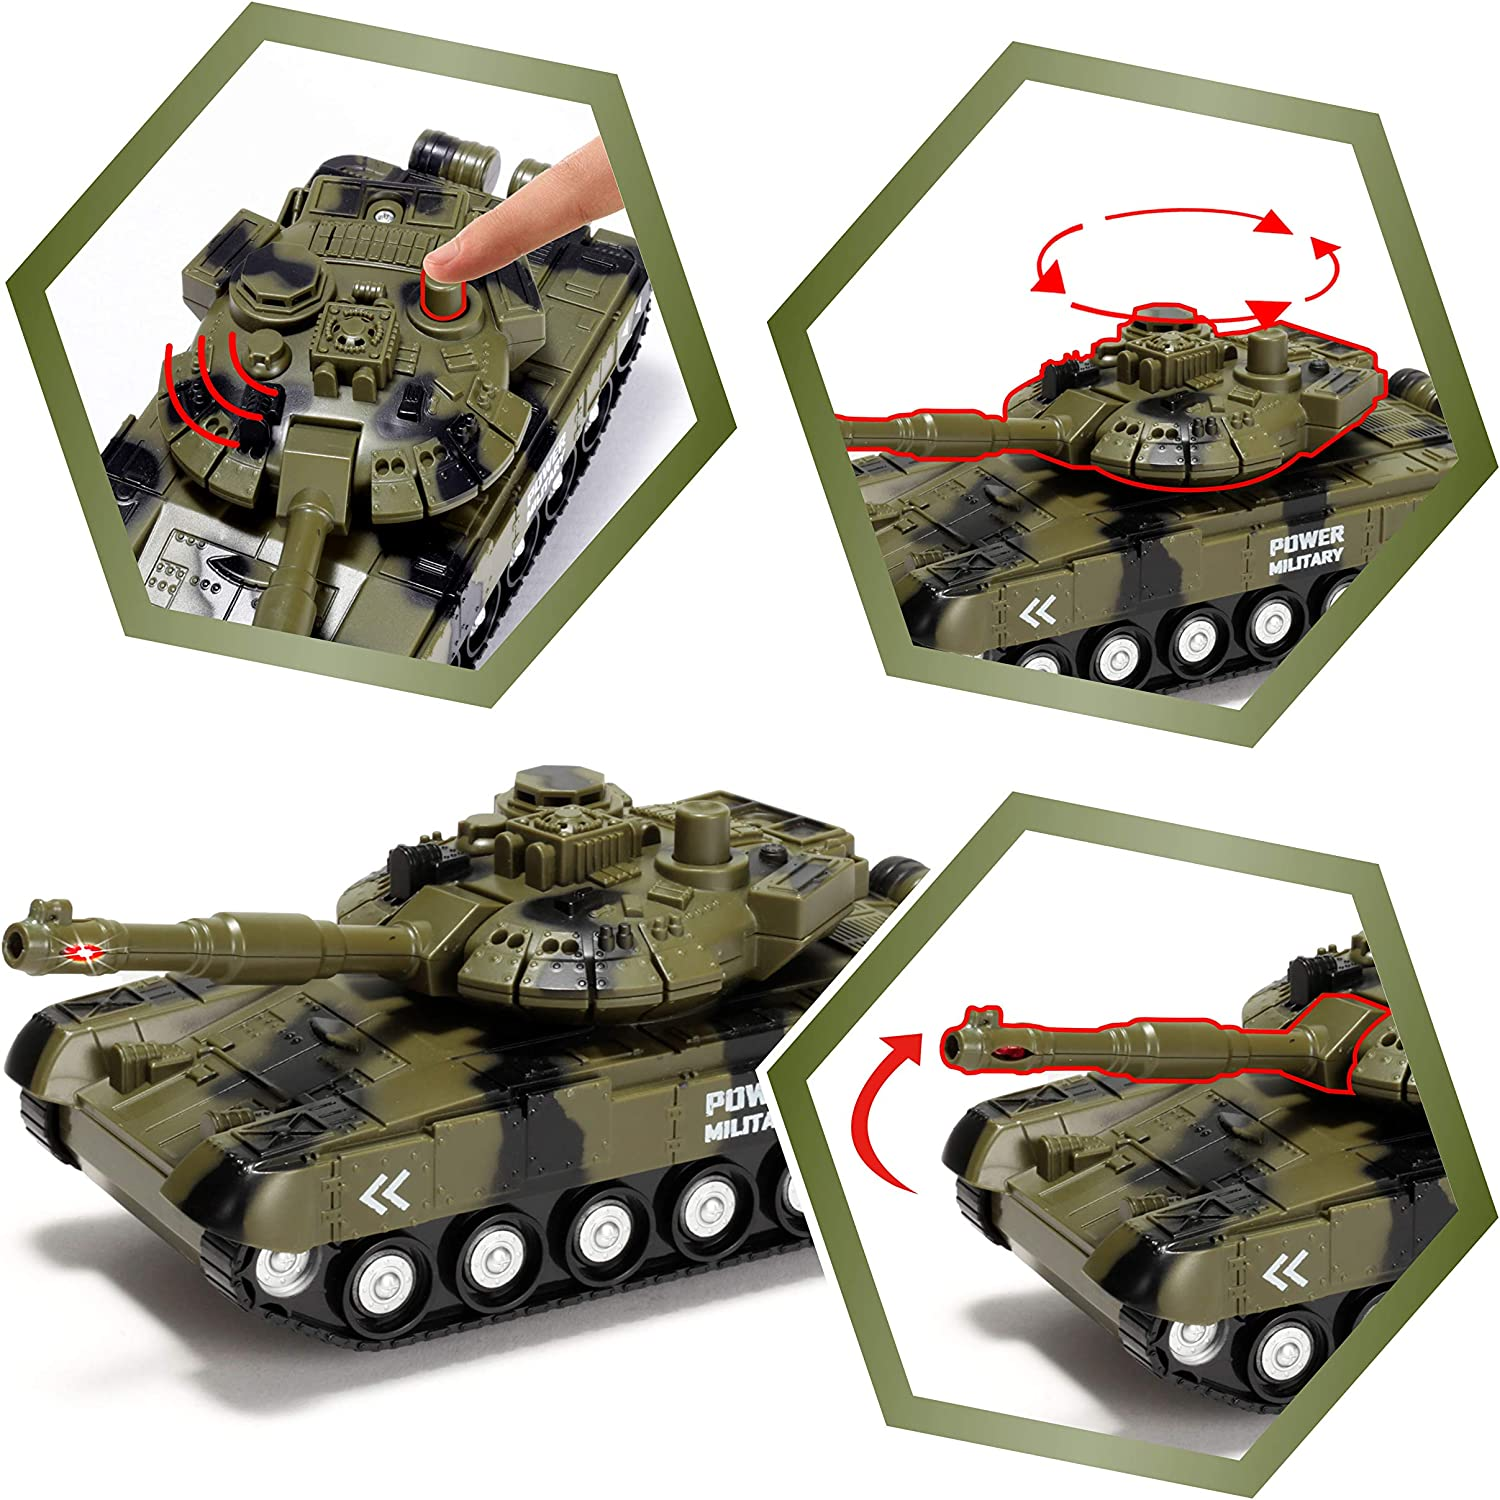 Including Military Truck Military Vehicles with Light and Sound Siren for Imaginative Play Helicopter and Tank Toy JOYIN 3 in 1 Friction Powered Siren Military Vehicle Toy with Action Figures